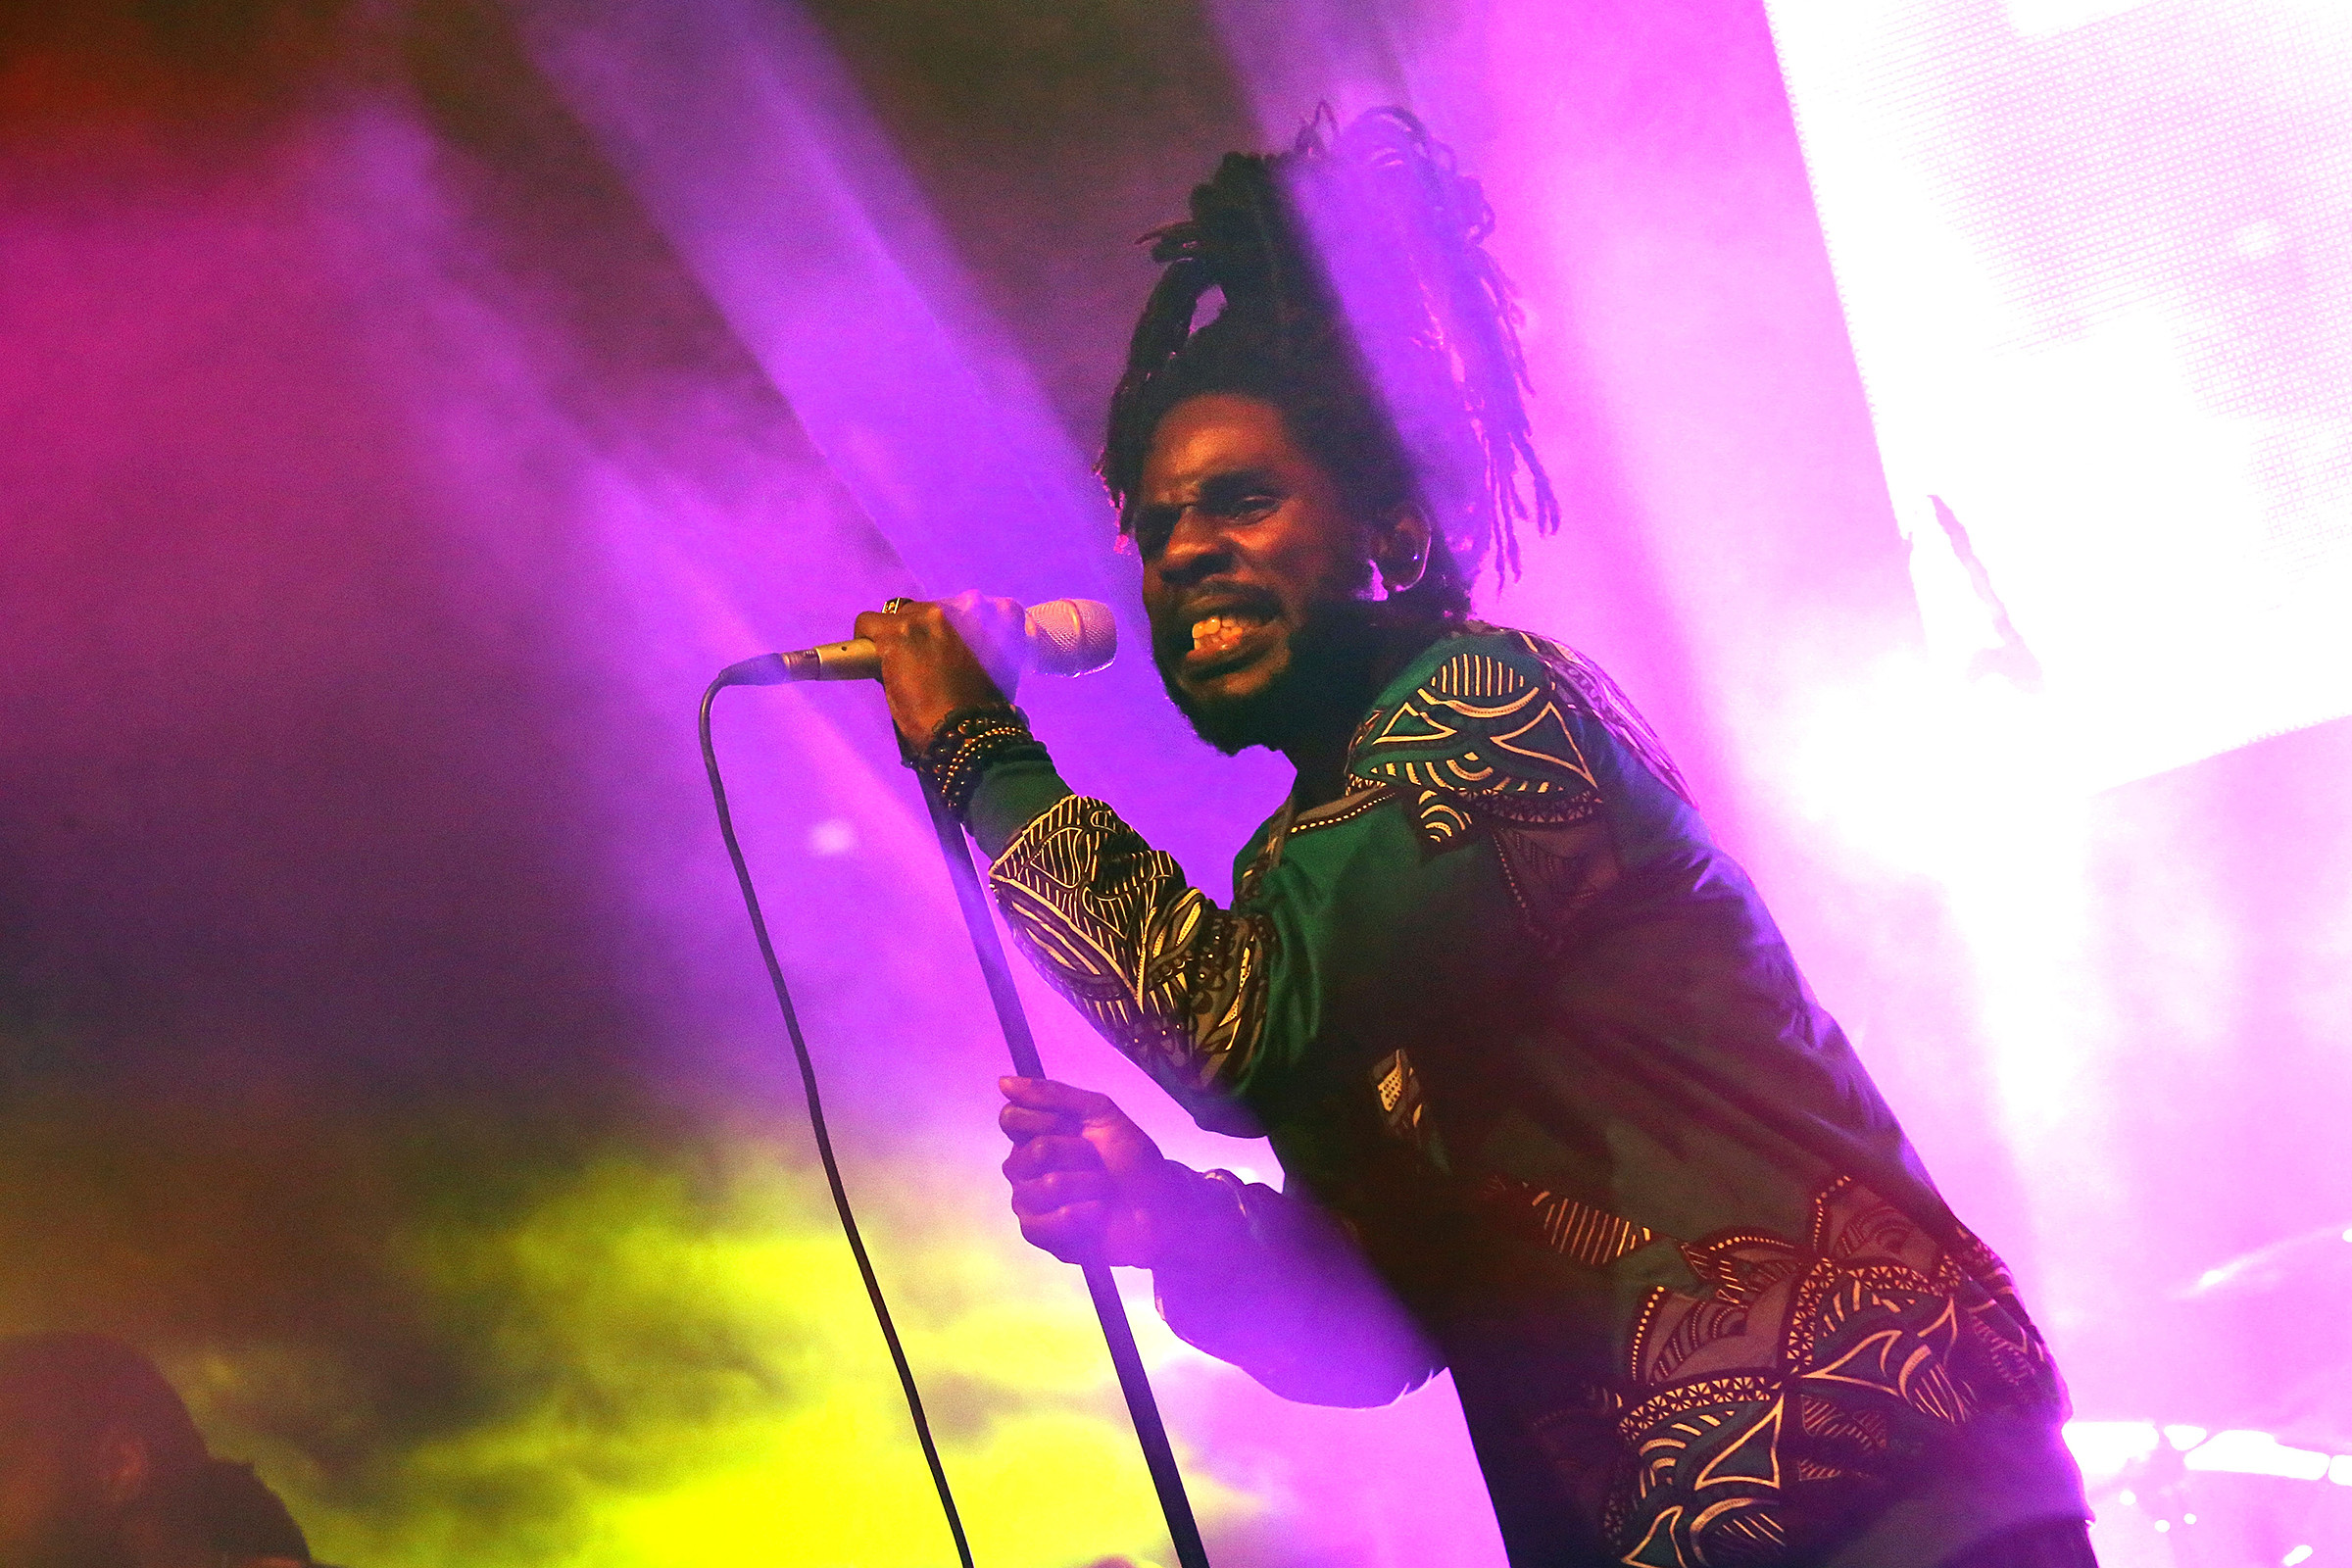 TORONTO, ON - AUGUST 17:  Chronixx and Zincfence Redemption Band perform at Nathan Phillips Square on August 17, 2018 in Toronto, Canada.  (Photo by Isaiah Trickey/FilmMagic)